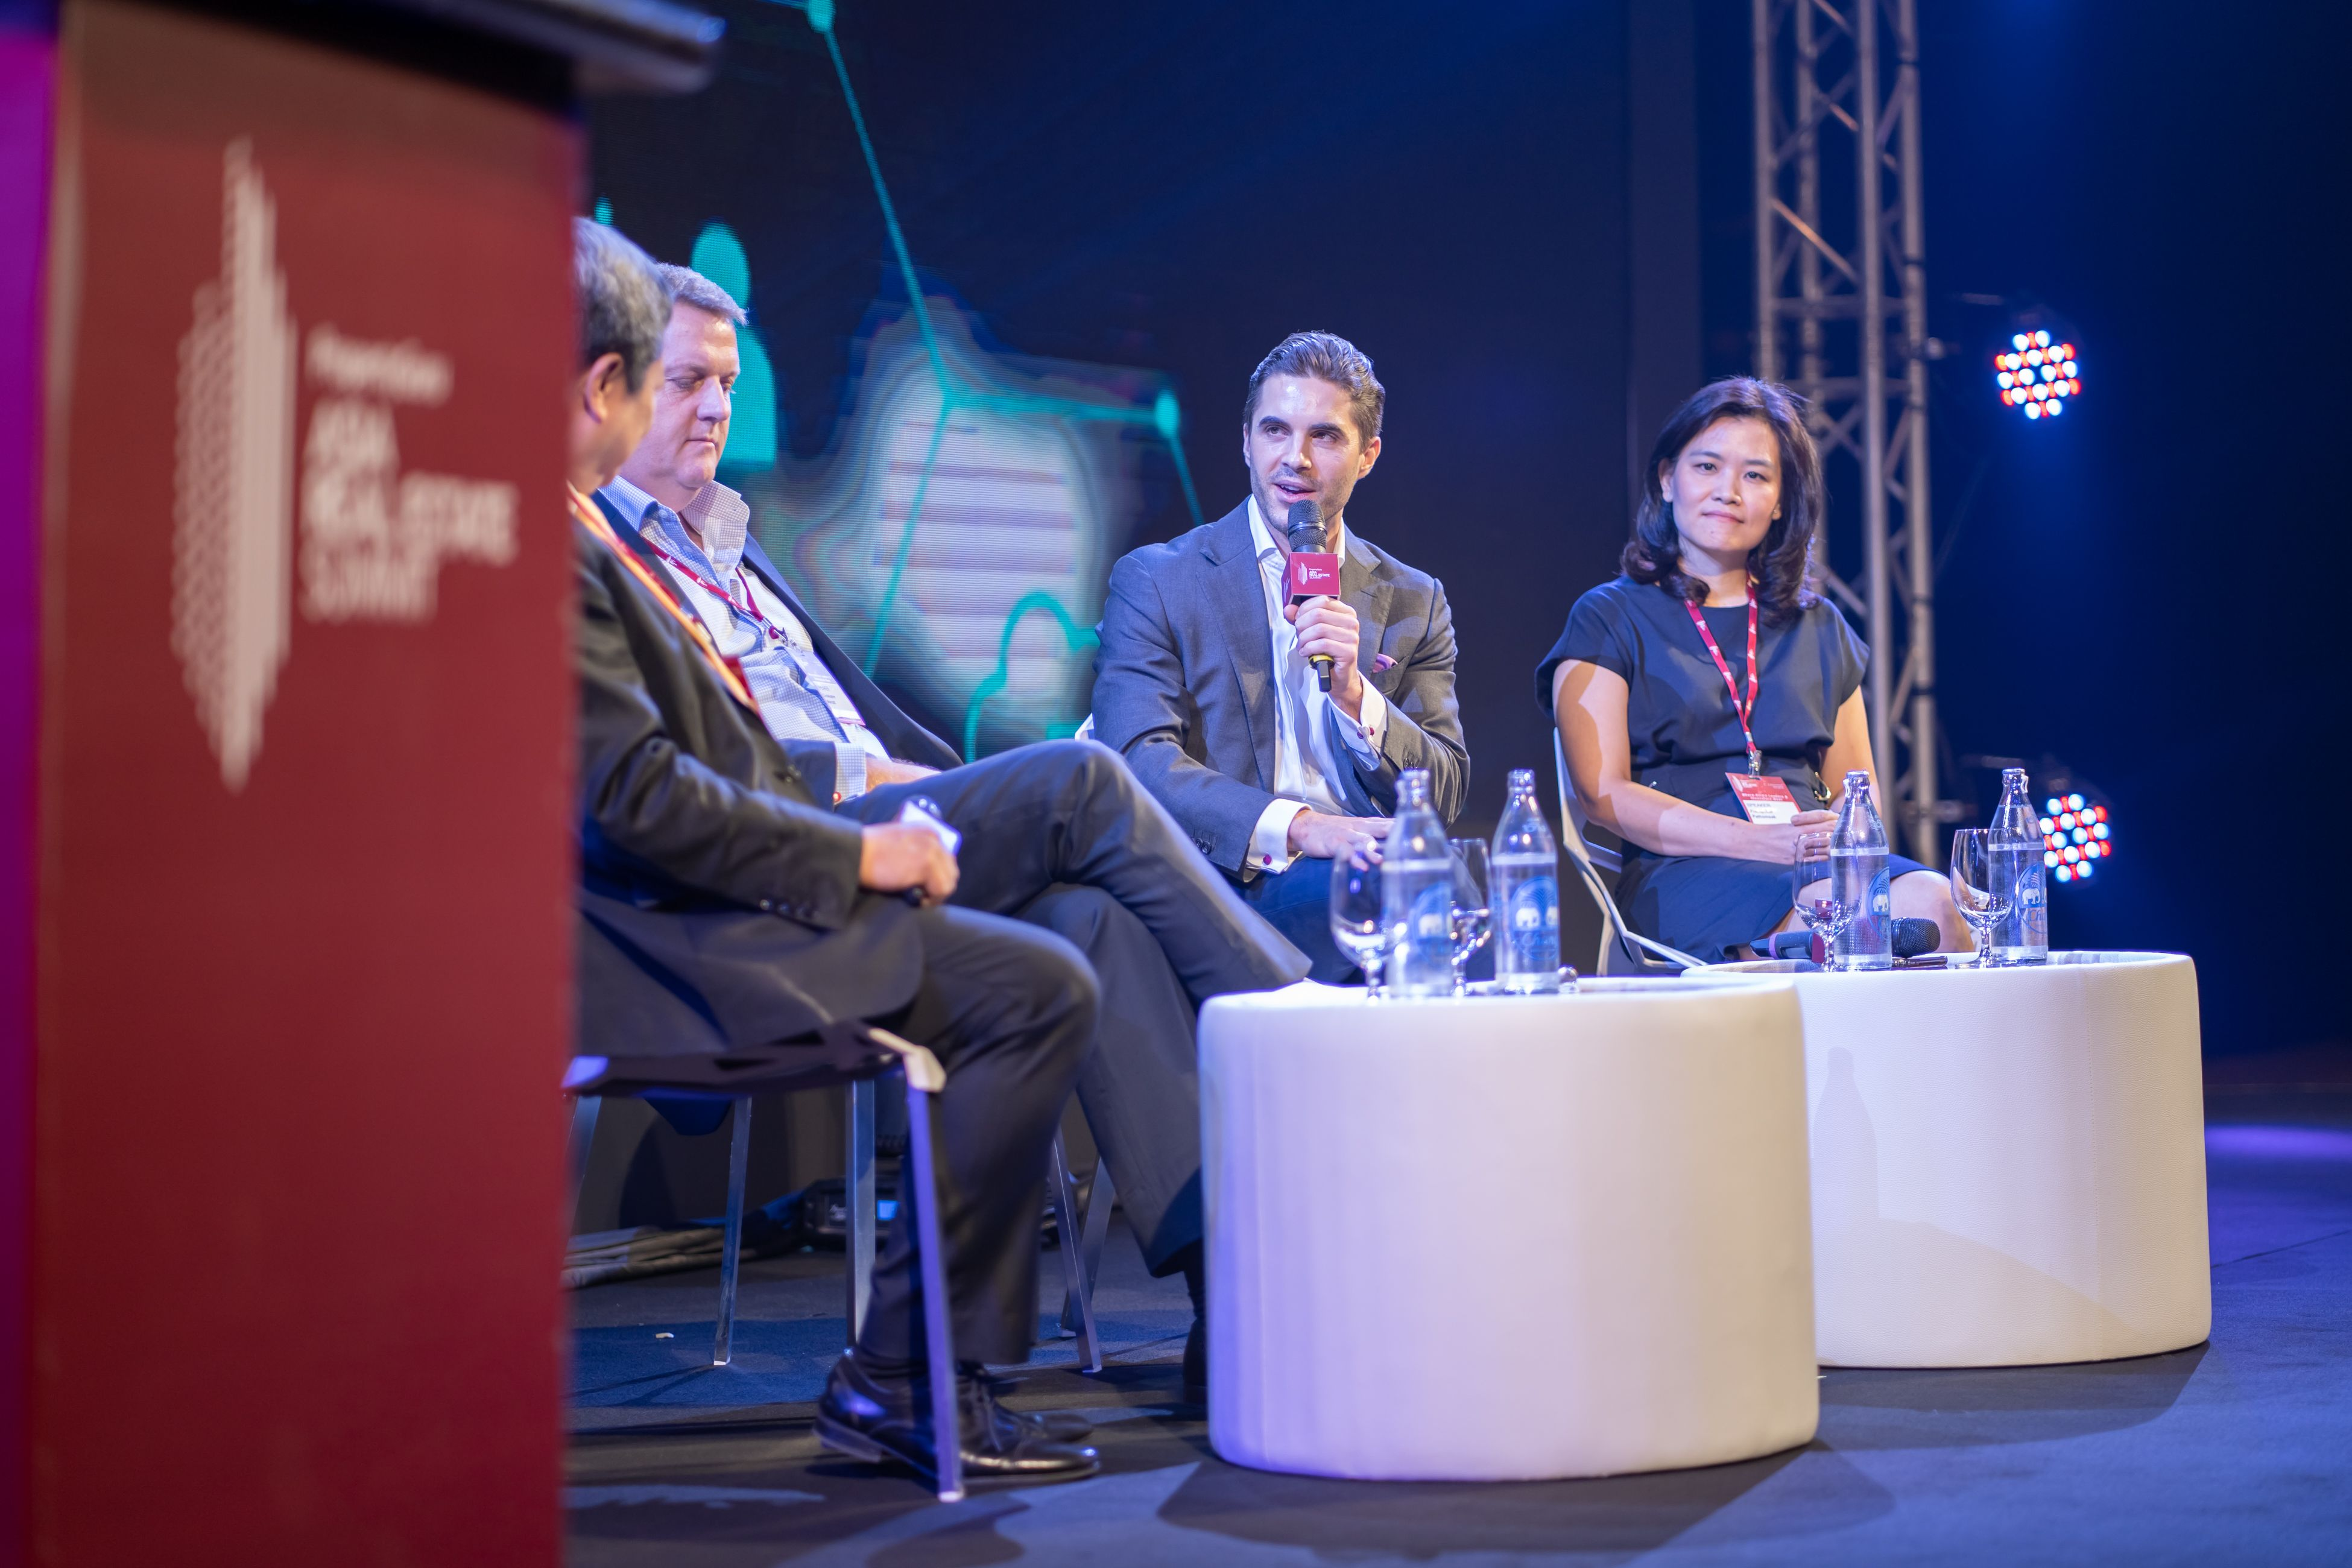 Moderated by Benedict Andrew Lim, managing director, Southeast Asian real estate at Ernst & Young, the panel on fintech at the PropertyGuru Asia Real Estate Summit consisted of Christopher J. Marriott, CEO, Southeast Asia, Savills; Dr Florian M. Spiegl, co-founder and COO, FinFabrik; and Phonpimol Pathomsak, fintech advisor